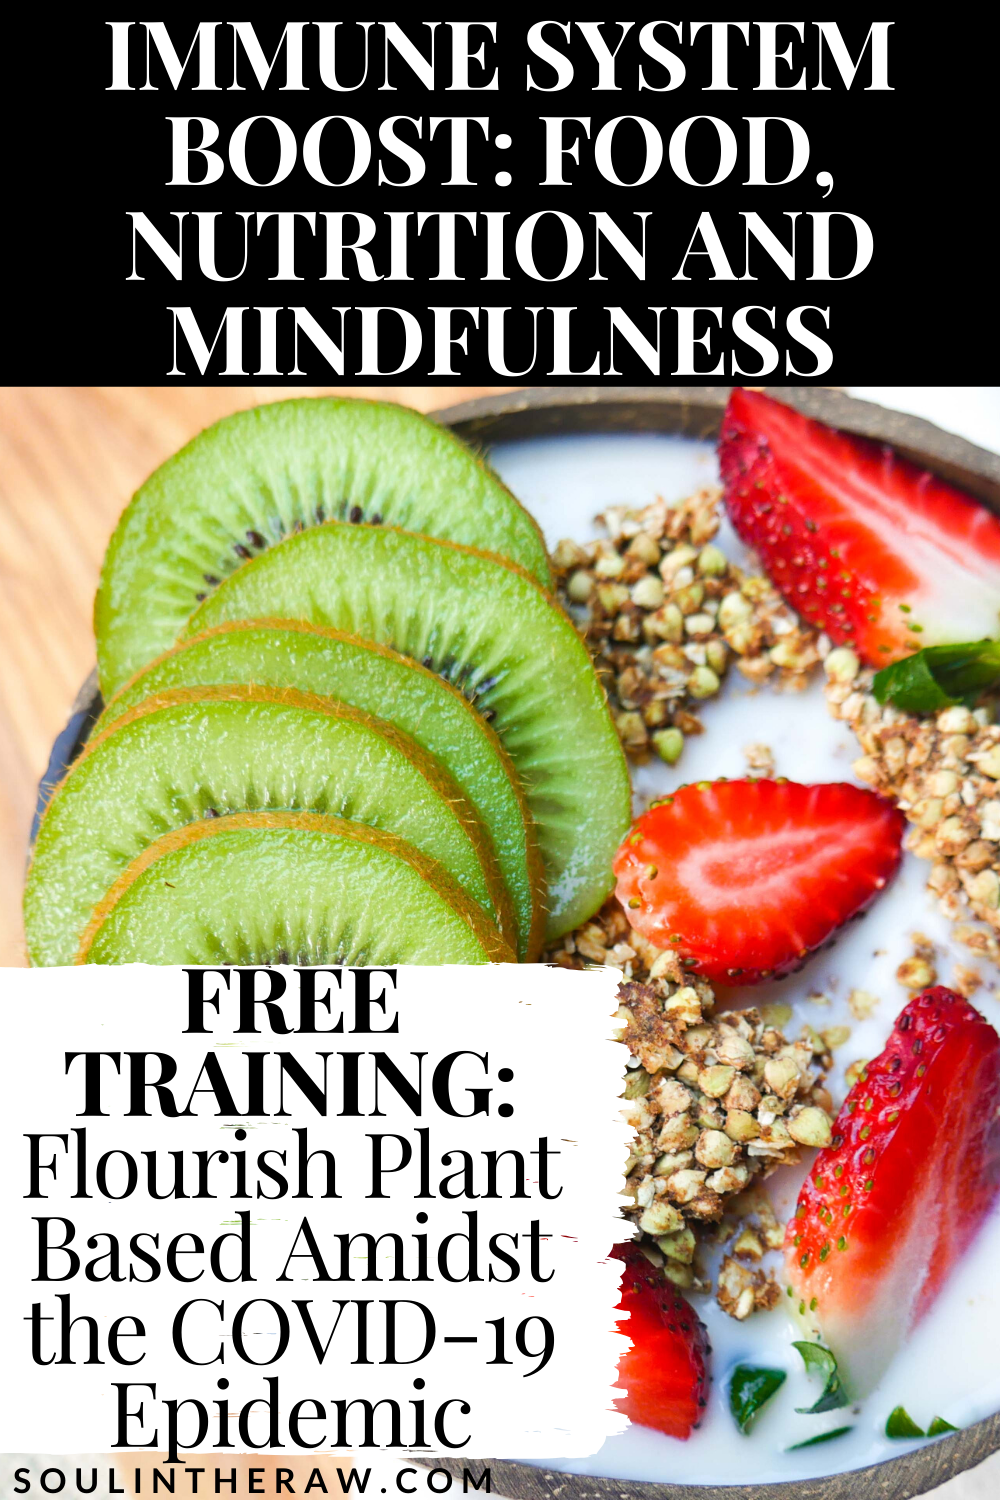 IMMUNE SYSTEM BOOST FOOD, NUTRITION AND MINDFULNESS